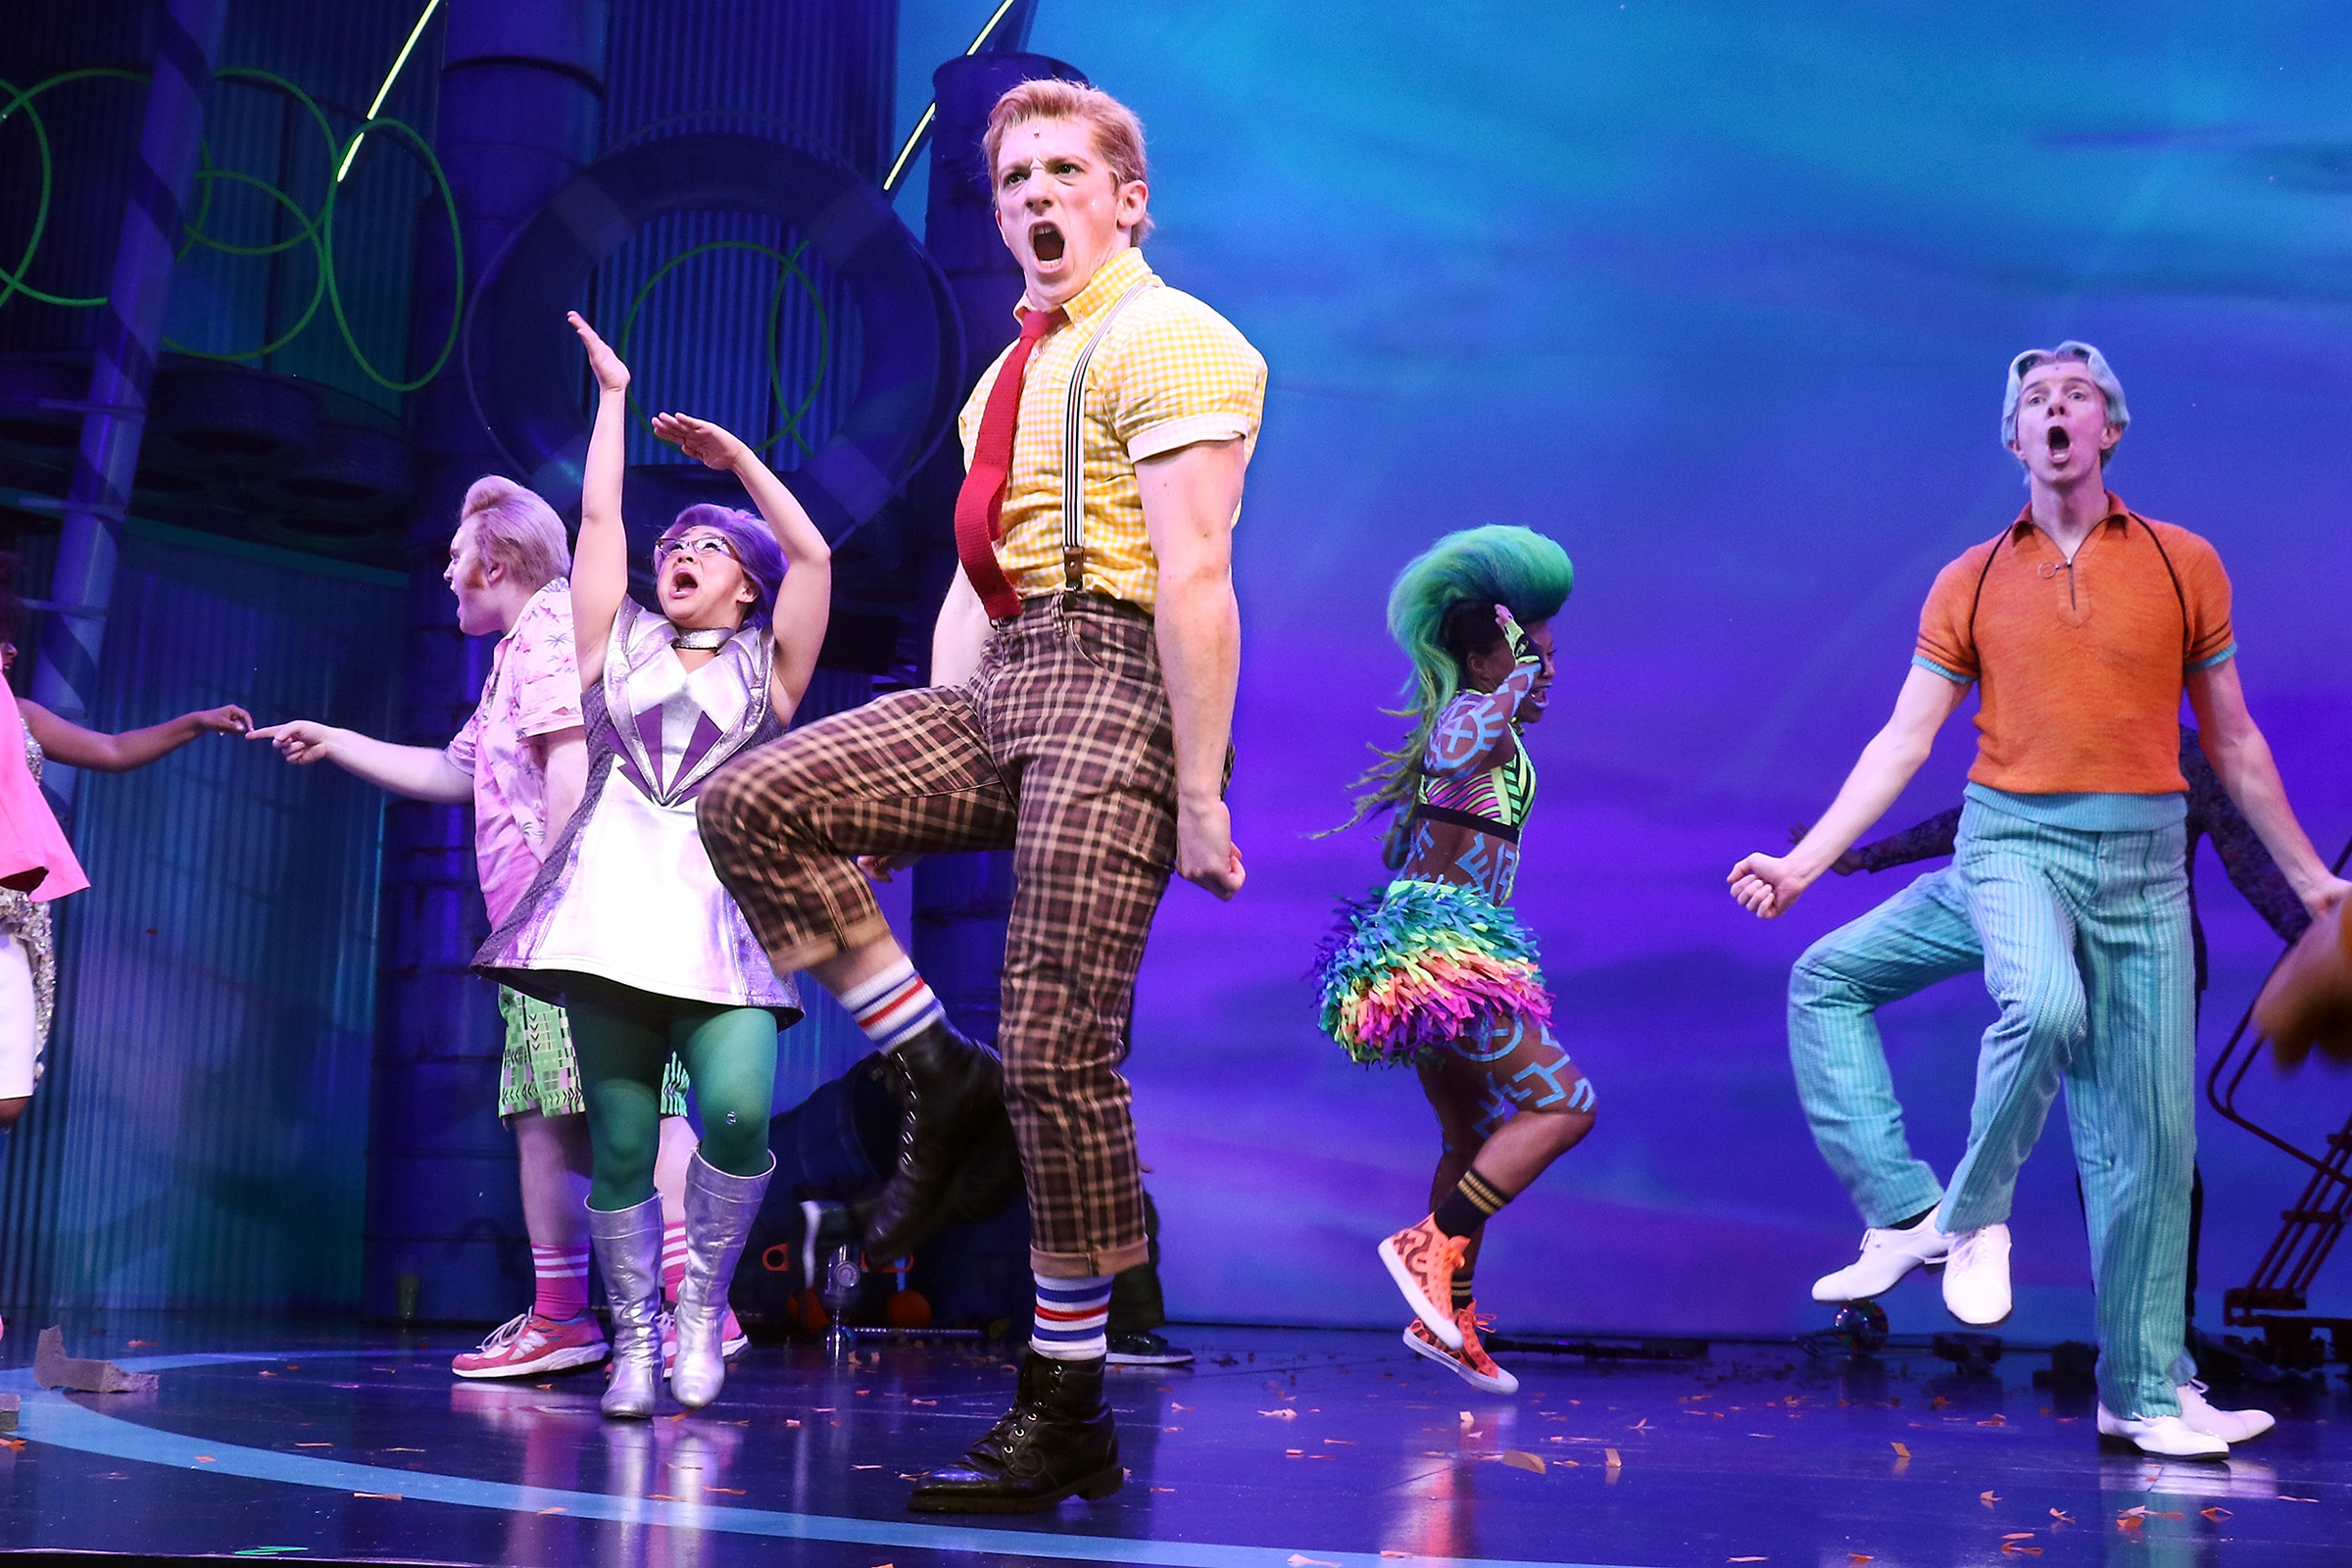 spongebob musical nickelodeon broadway stage performance televised cast air will utopia american byrne david squarepants stone theatre action television rollingstone